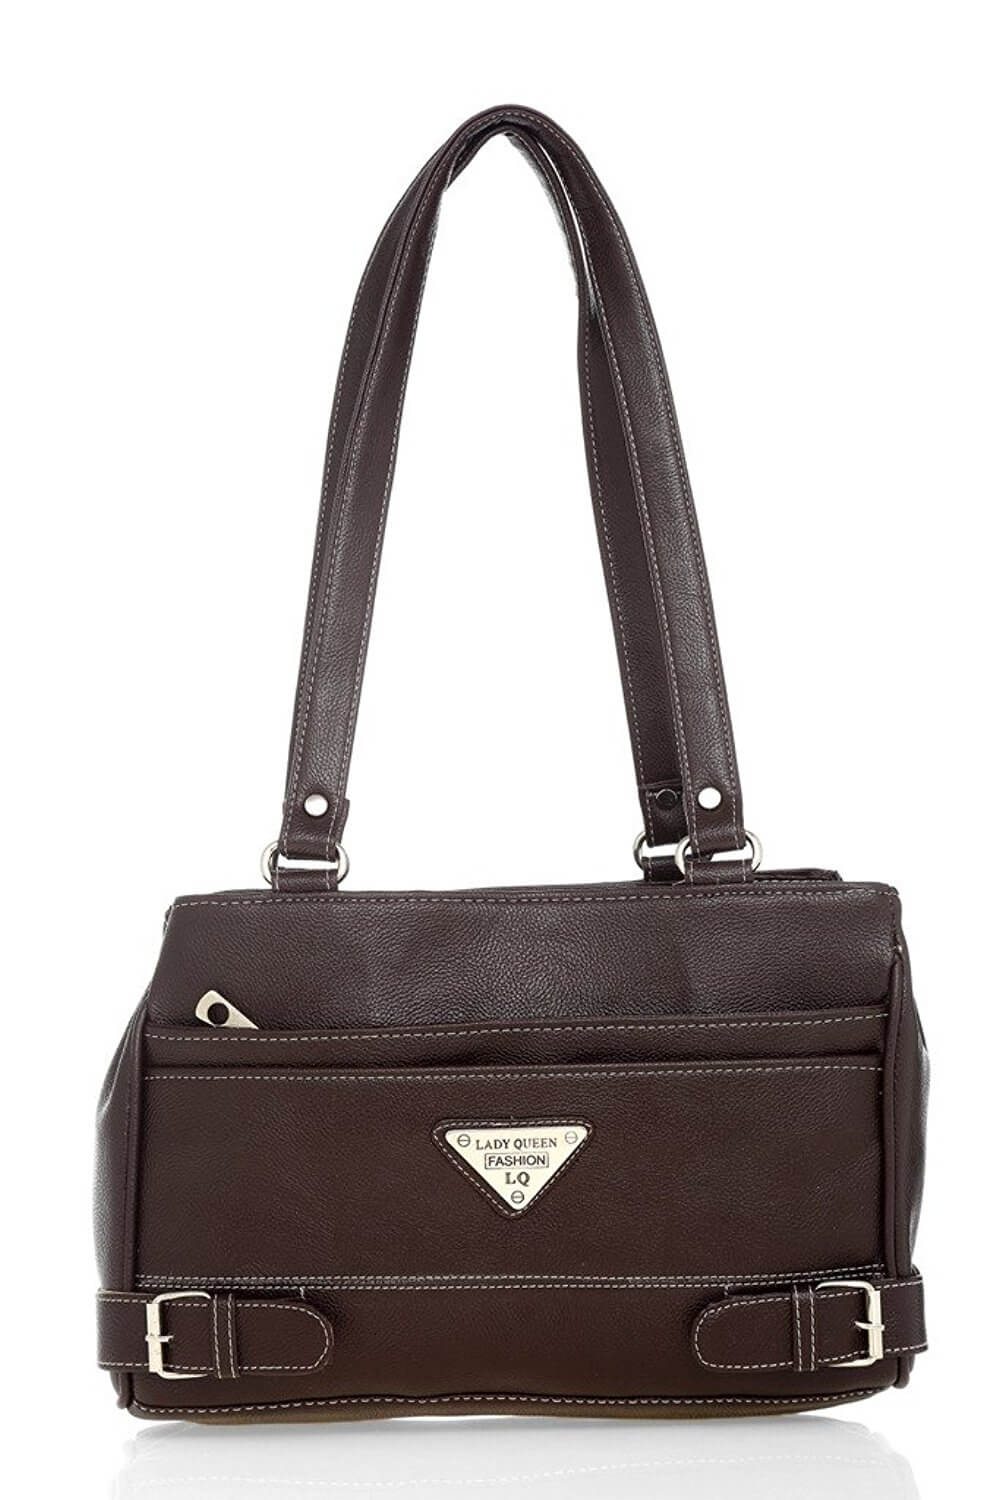 Lady queen casual bag LD - 364